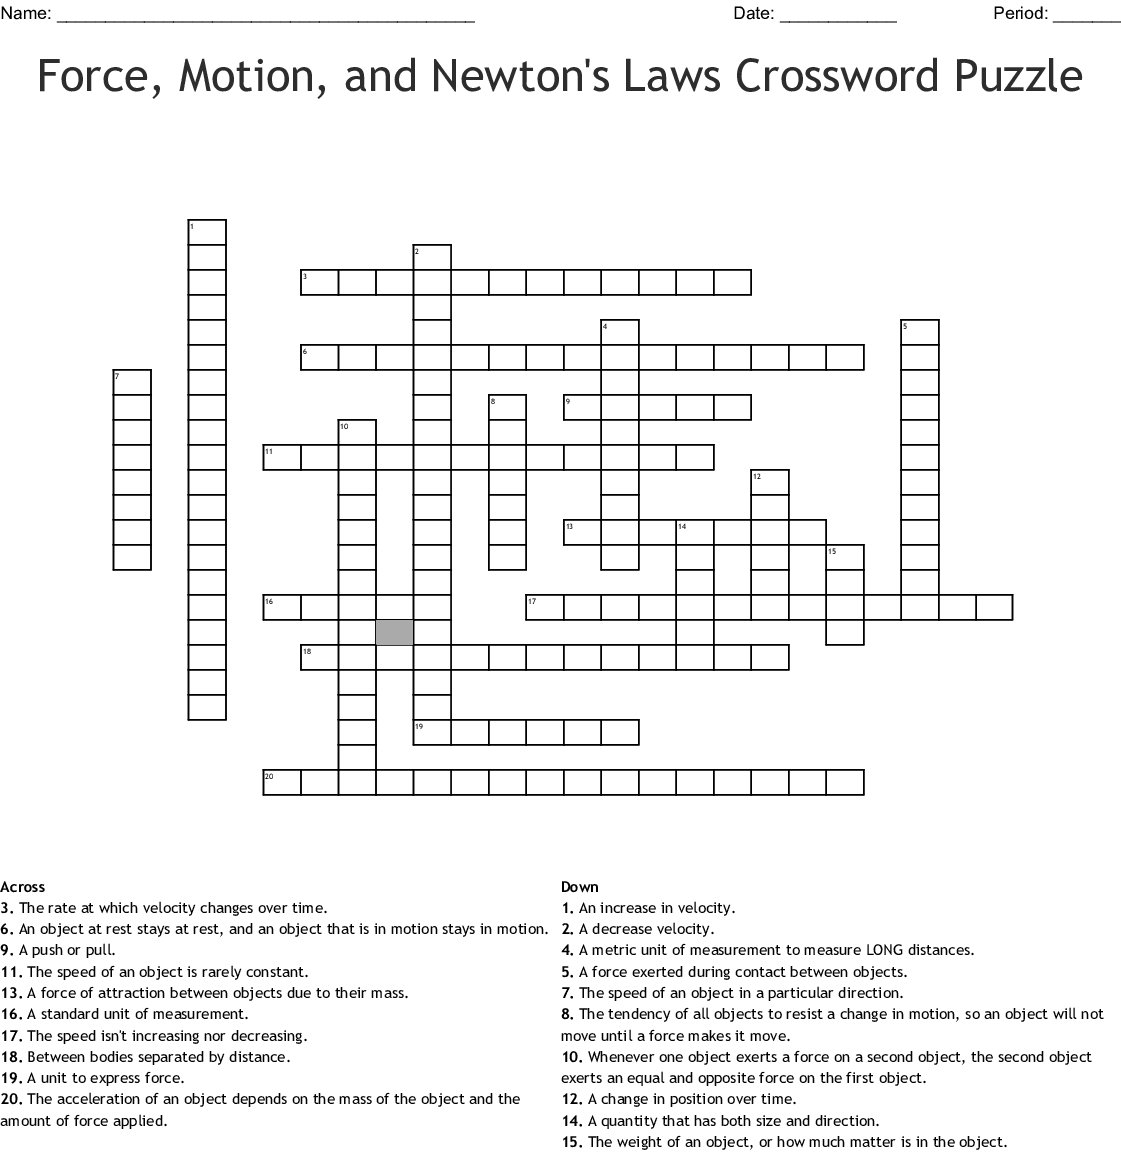 Force, Motion, And Newton's Laws Crossword Puzzle Crossword - Wordmint - Physics Crossword Puzzles Printable With Answers